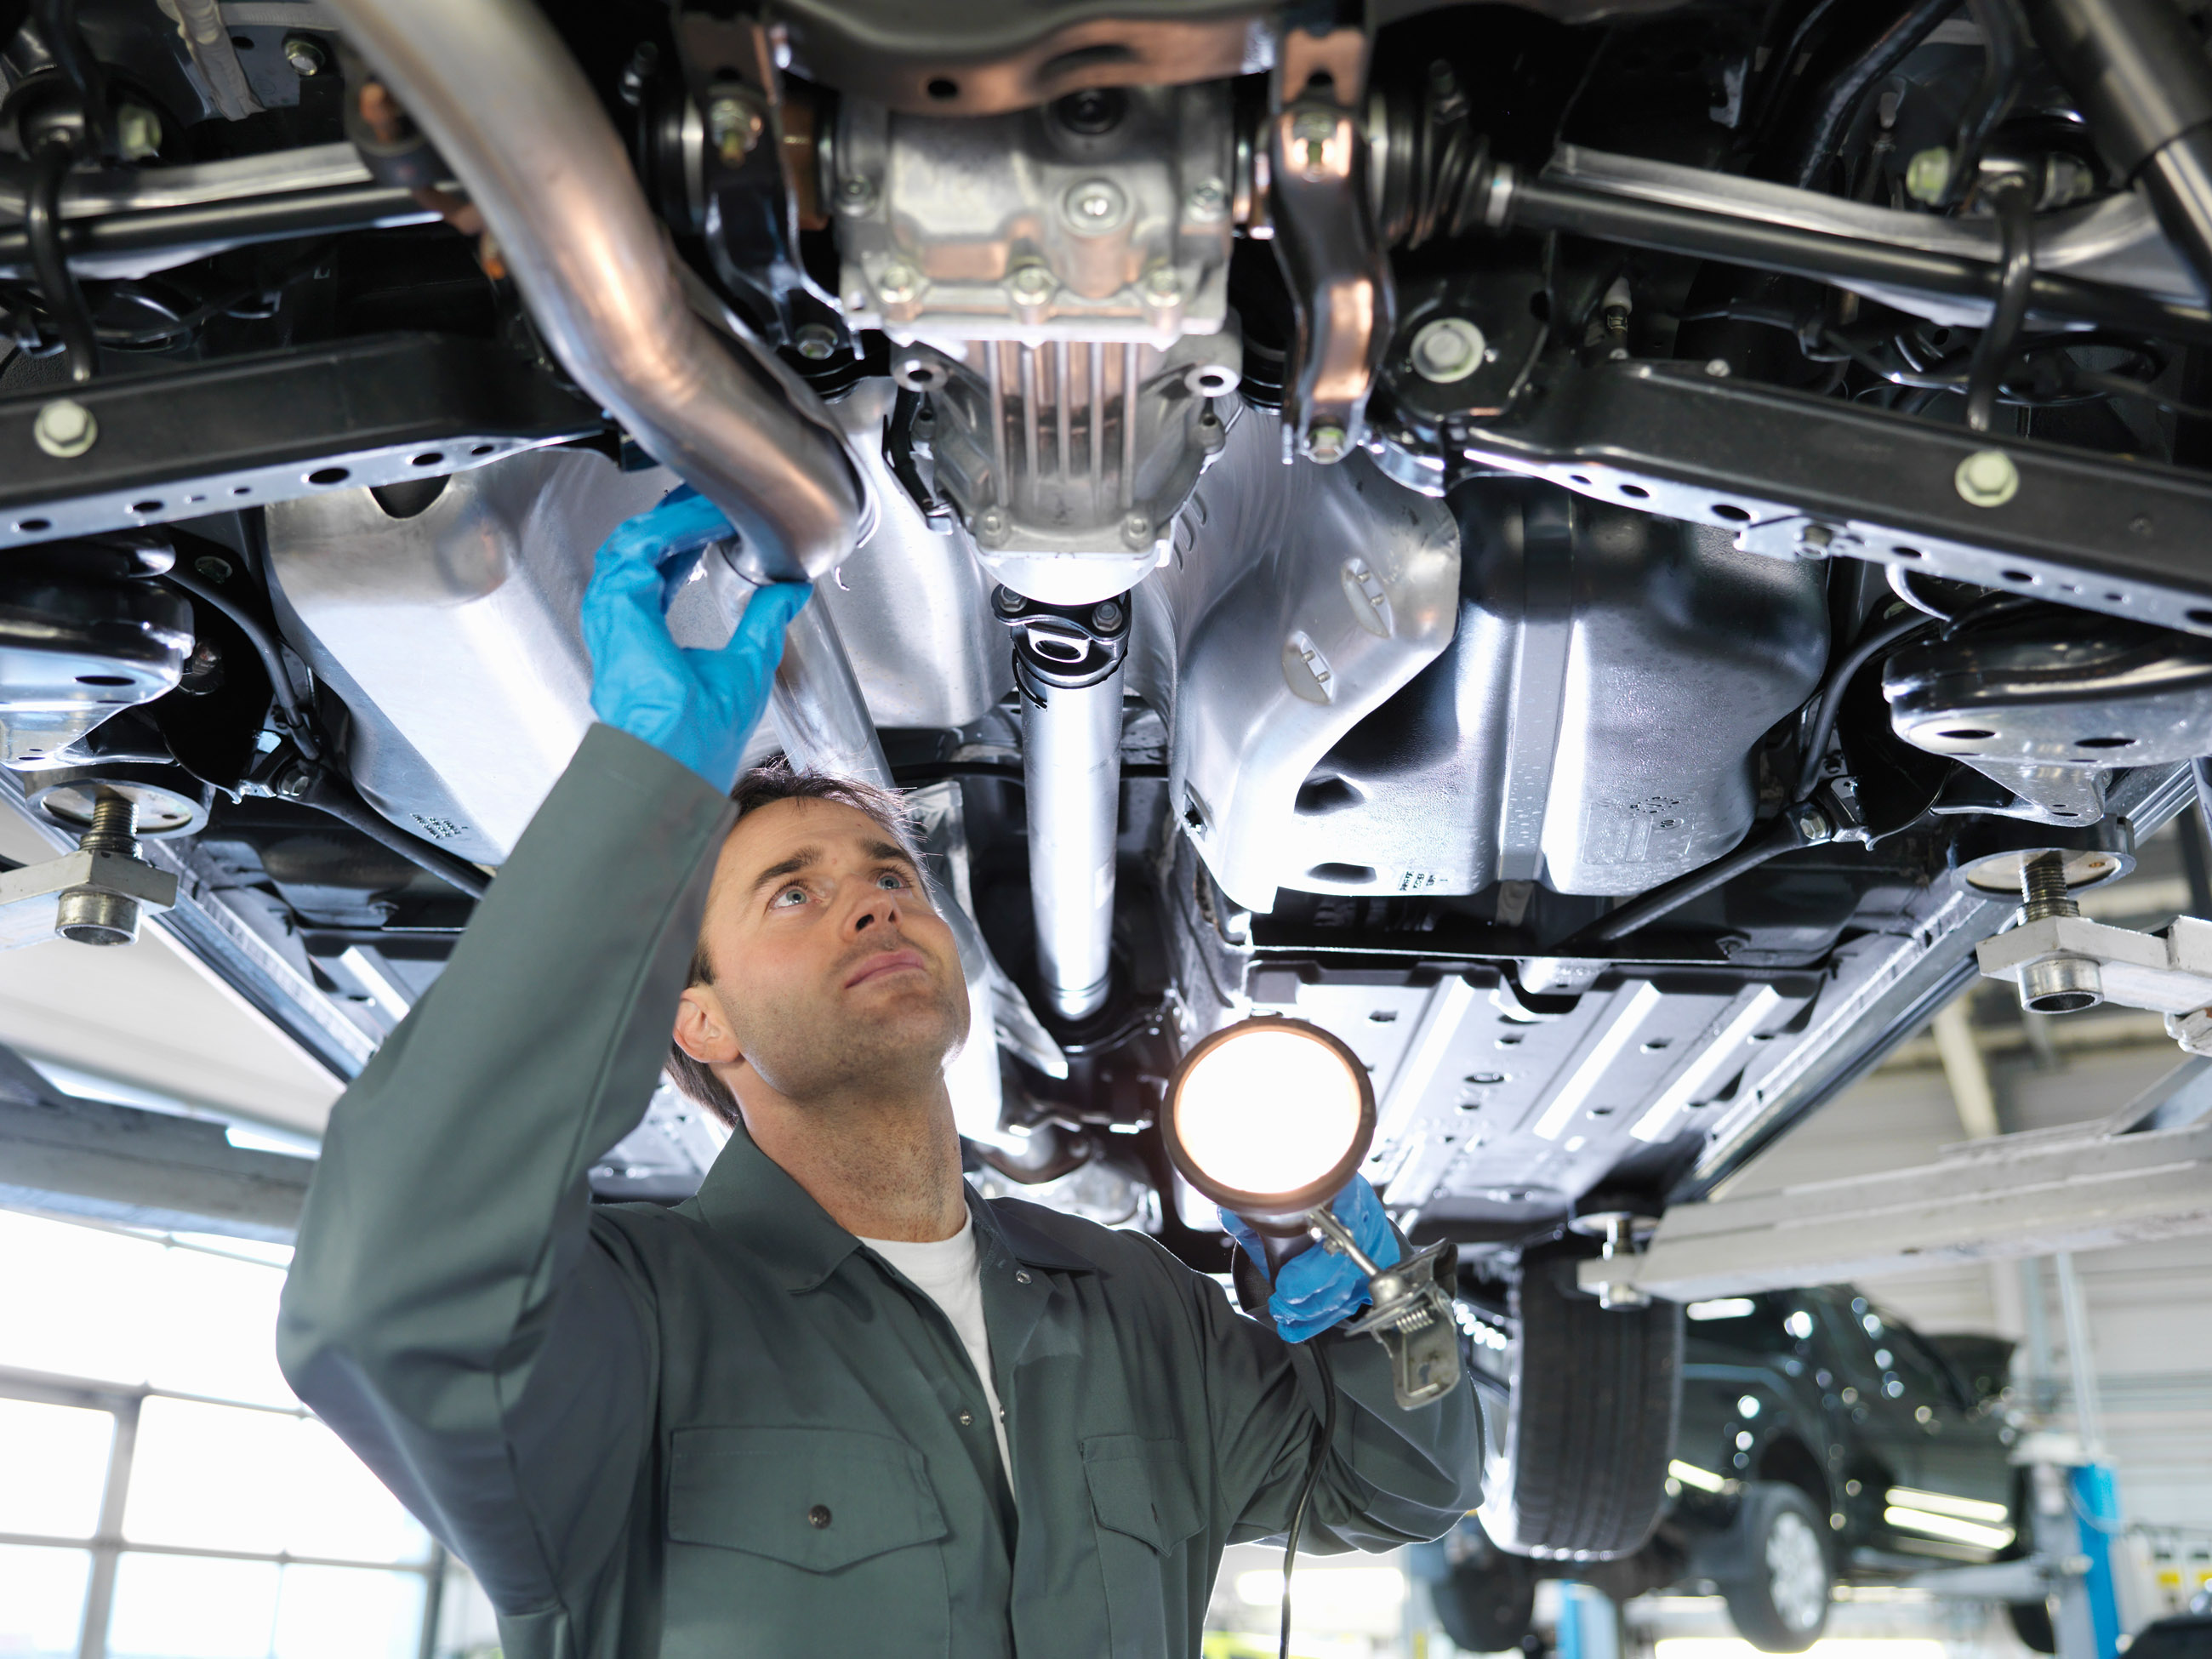 How To Find A Trusted Mechanic